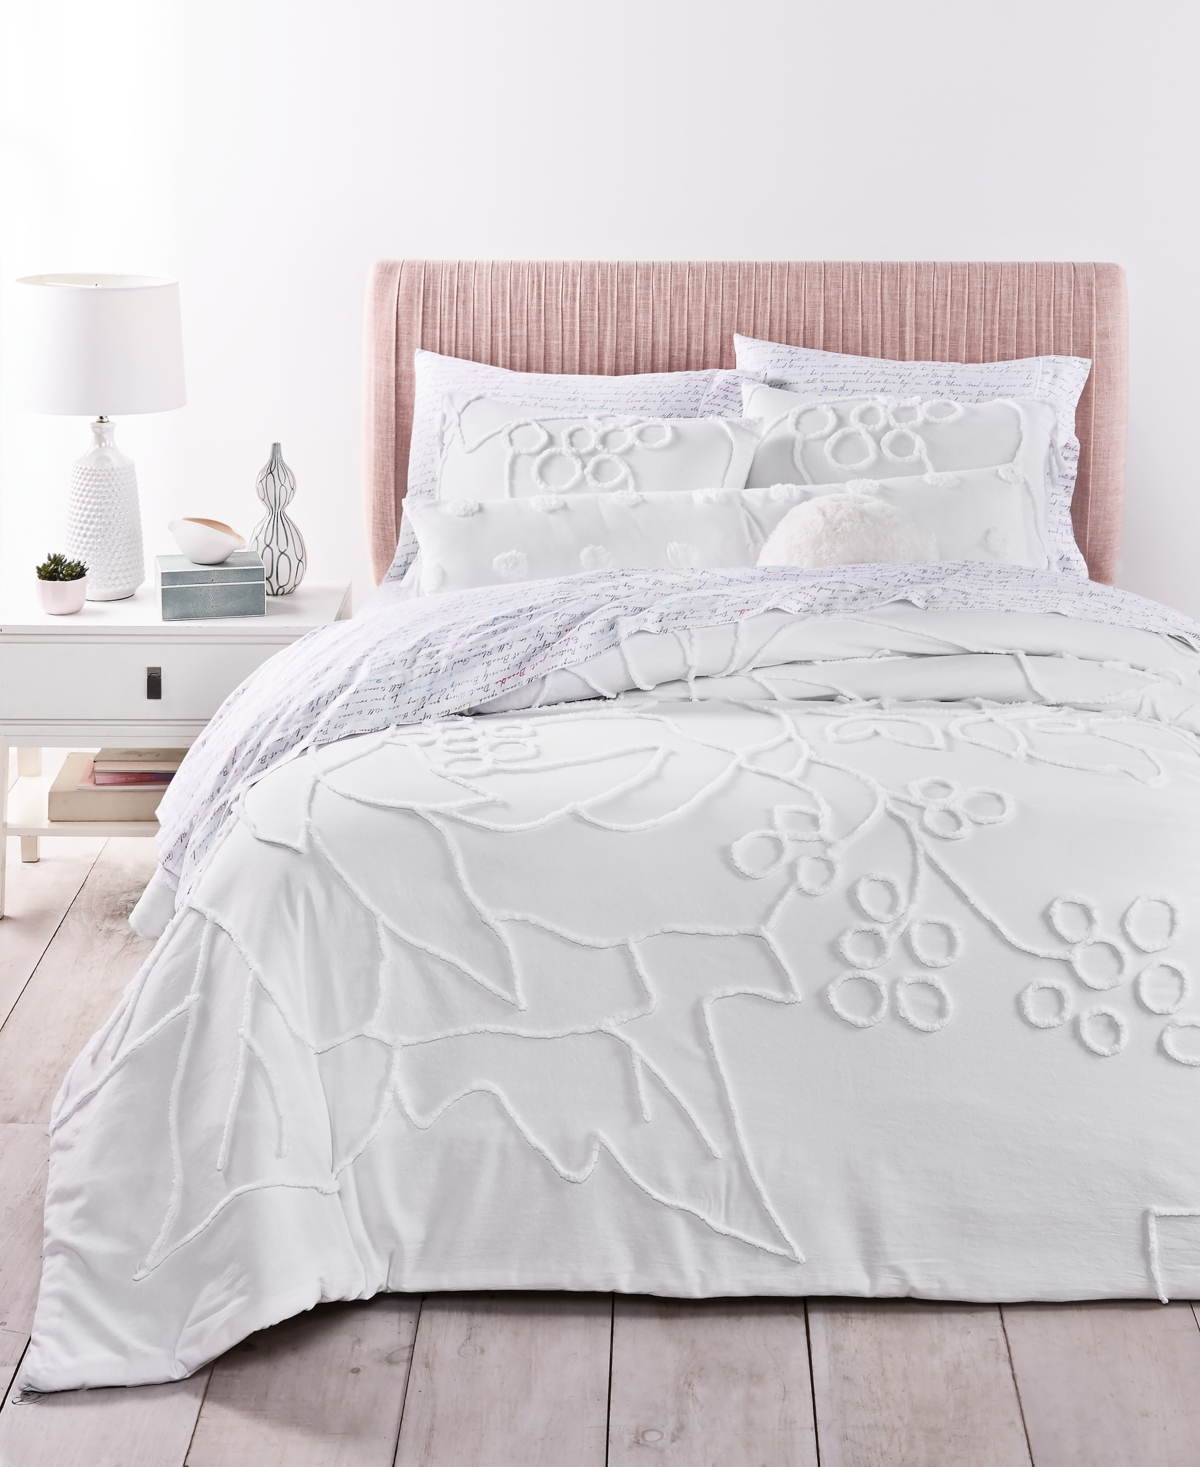 Whim by Martha Stewart Collection Chenille Exploded Floral 3-Pc King Comforter Set, Created for Macy's Bedding